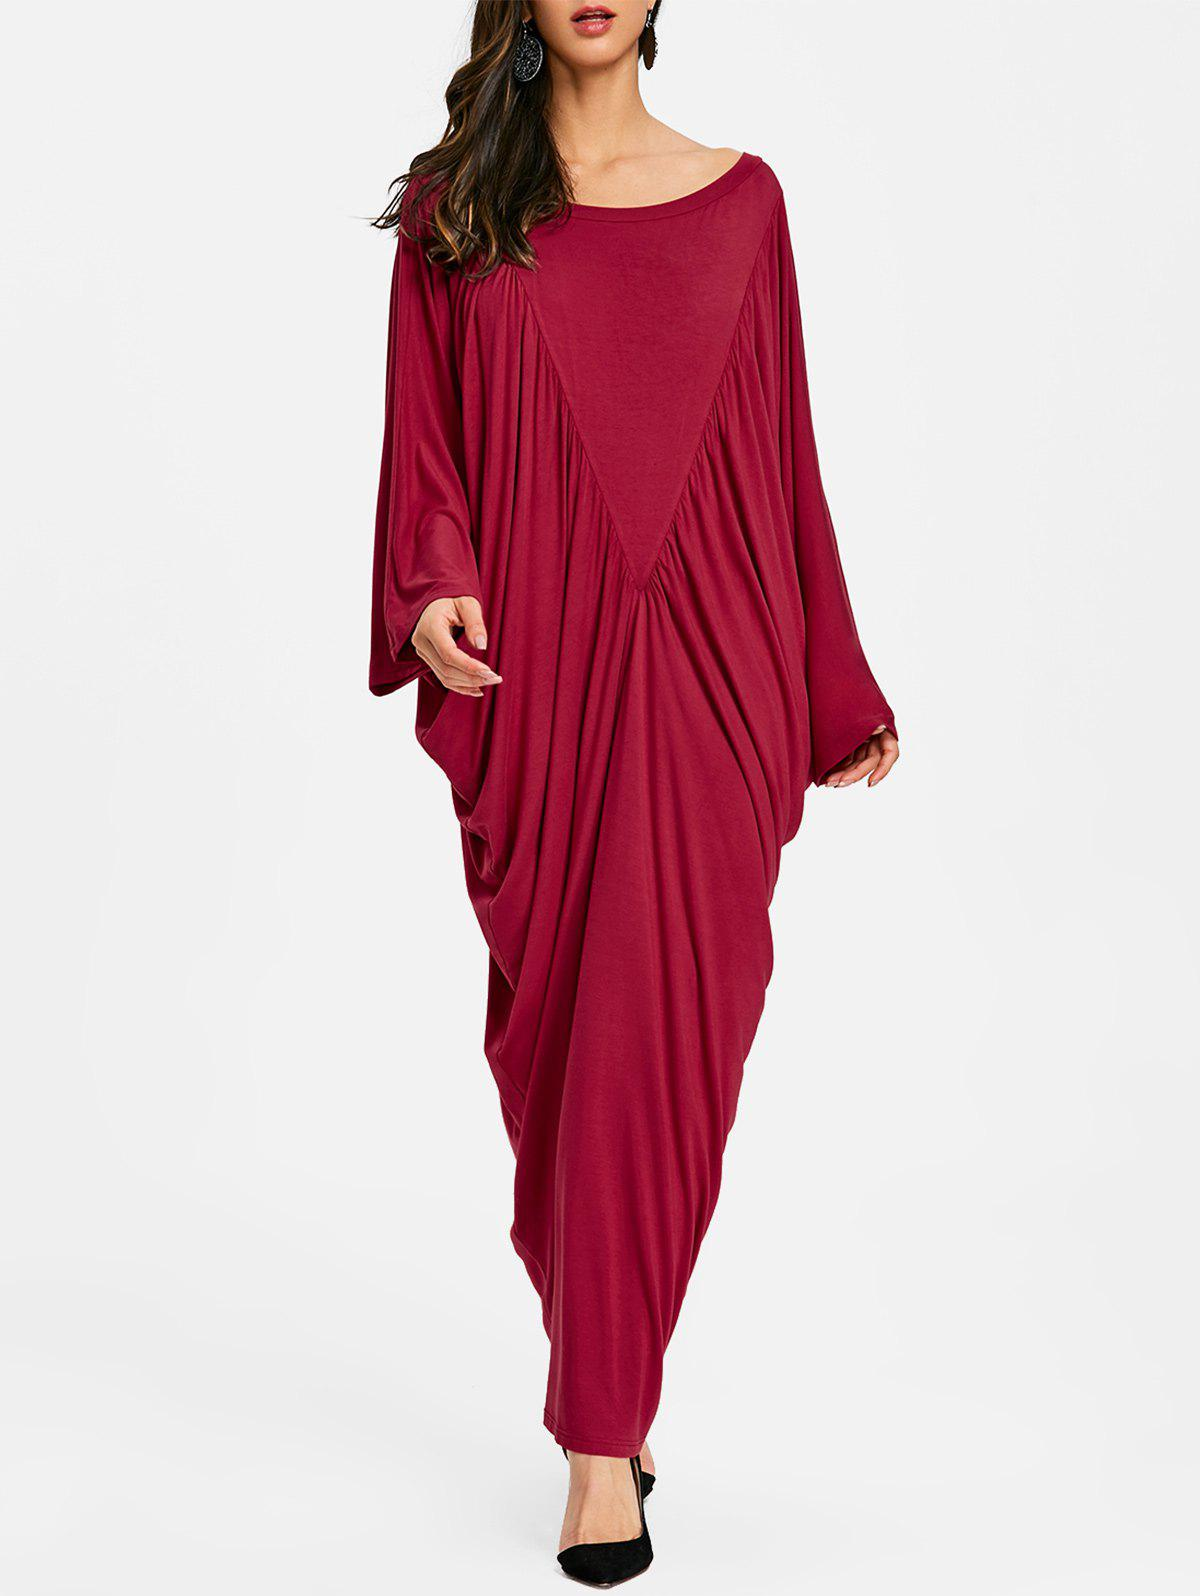 Batwing Sleeve Ruched Long Caftan Dress - WINE RED S